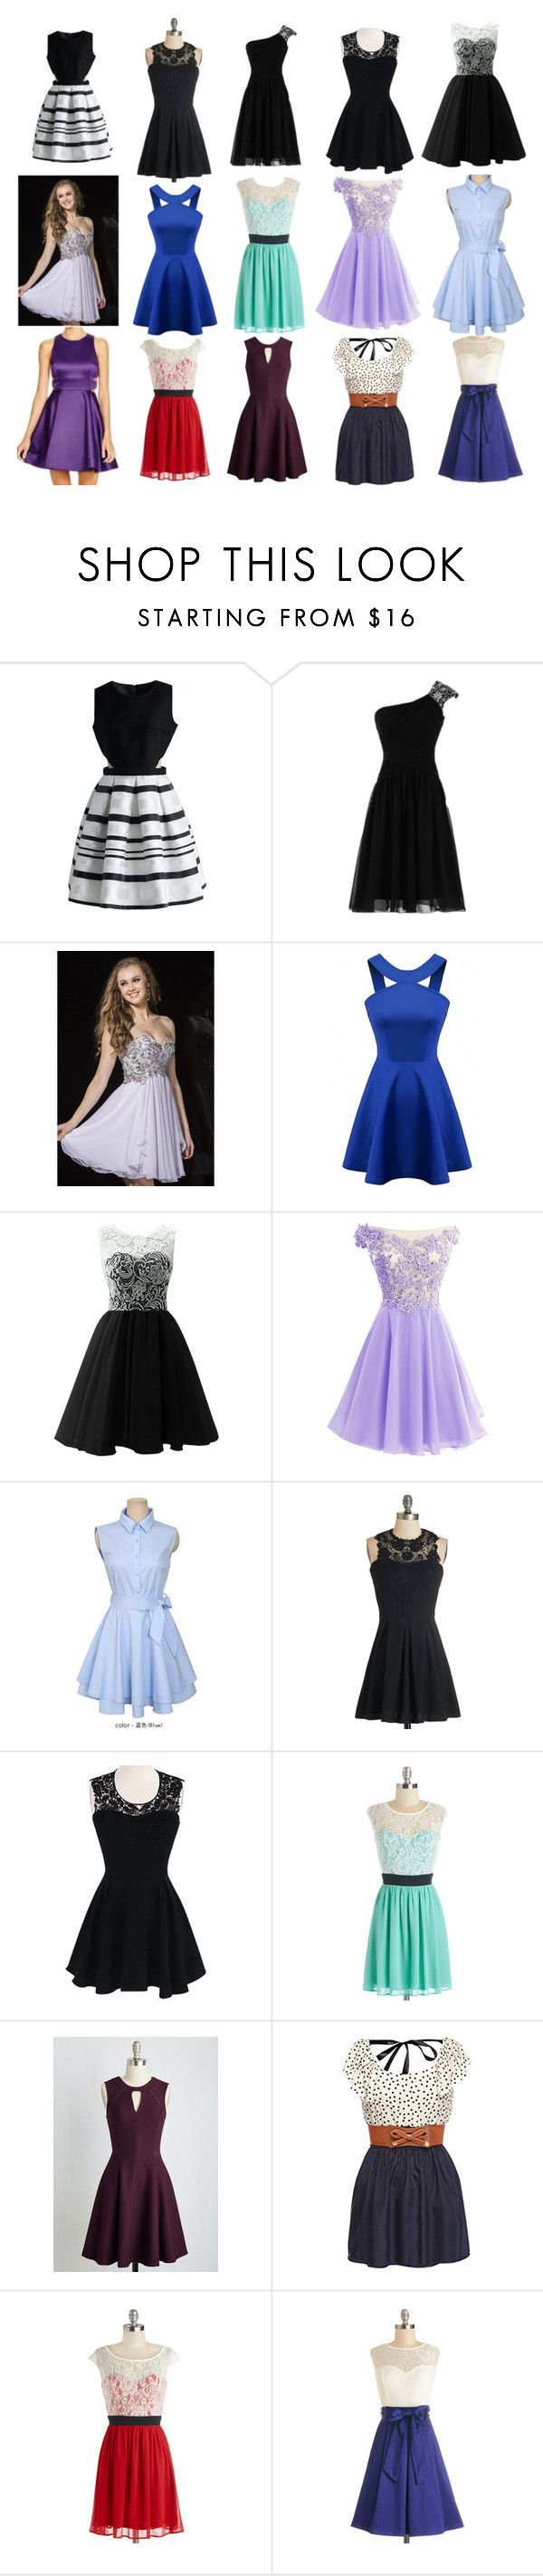 """""""Dresses"""" by amyhnsn ❤ liked on Polyvore featuring Chicwish and Jolly Club"""